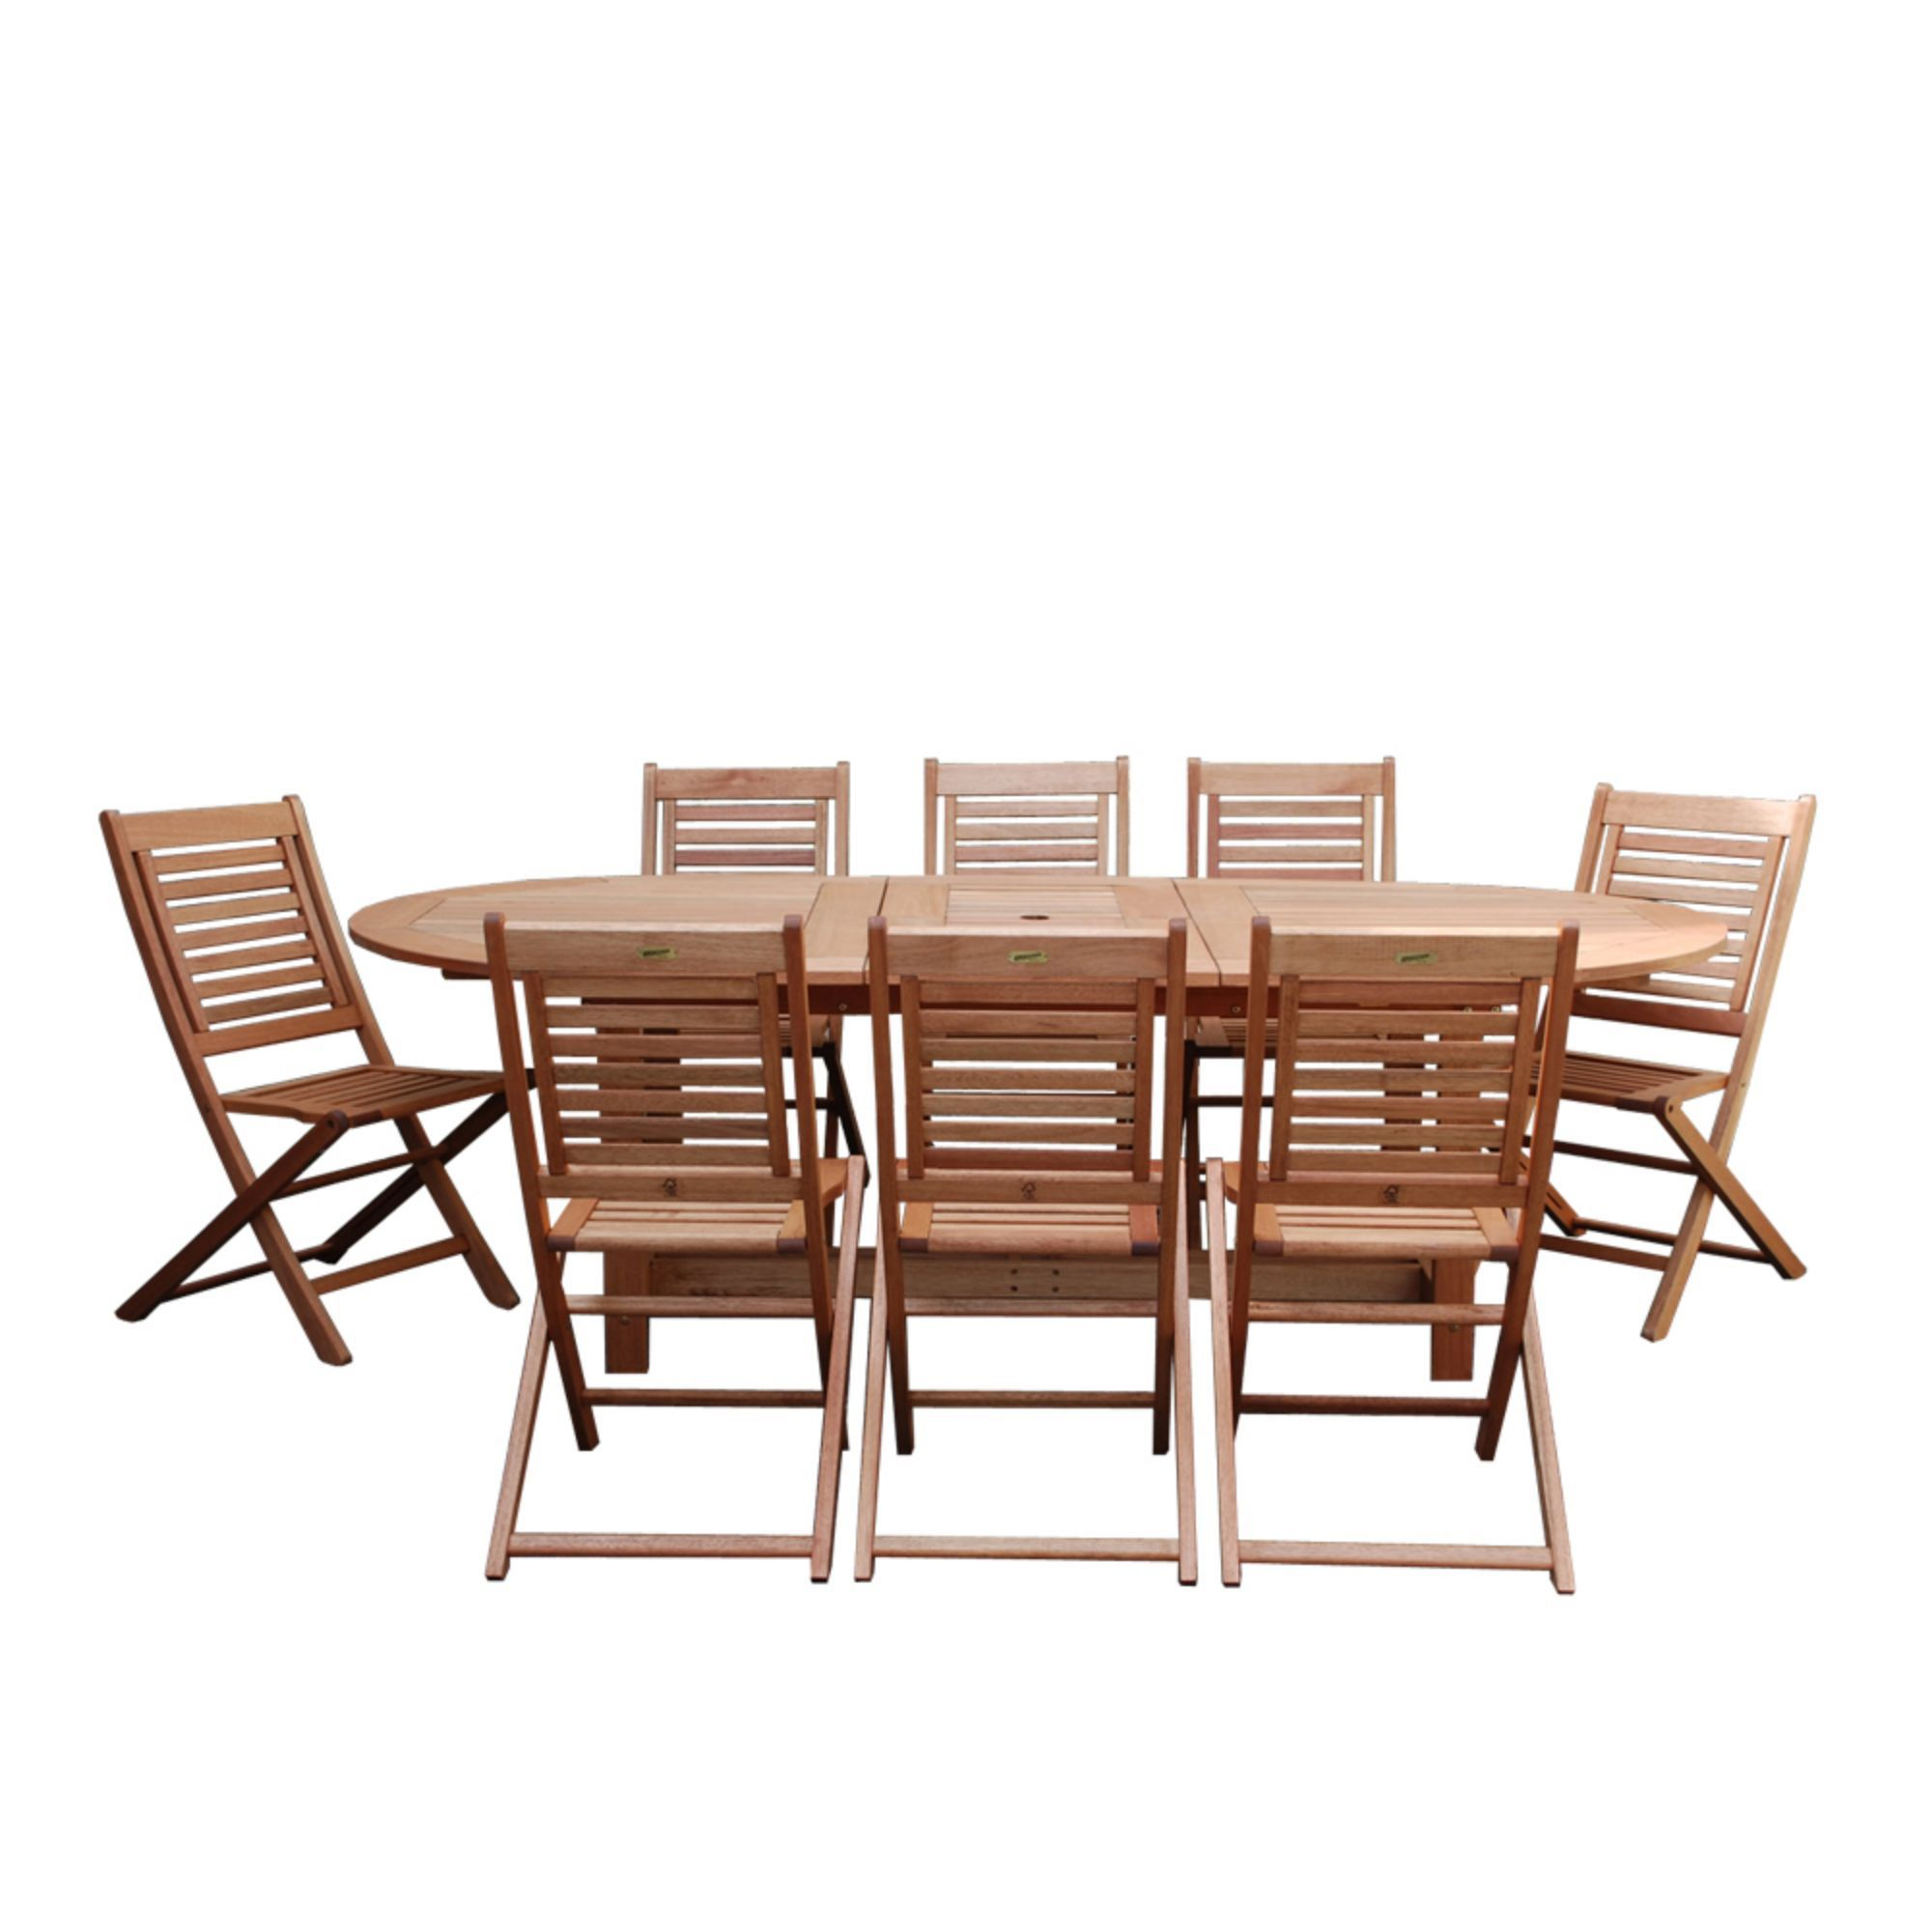 Vermont Extendable Garden Table And Chair Set: 9-Piece Brown Milano Eucalyptus Grand Oval Extendable